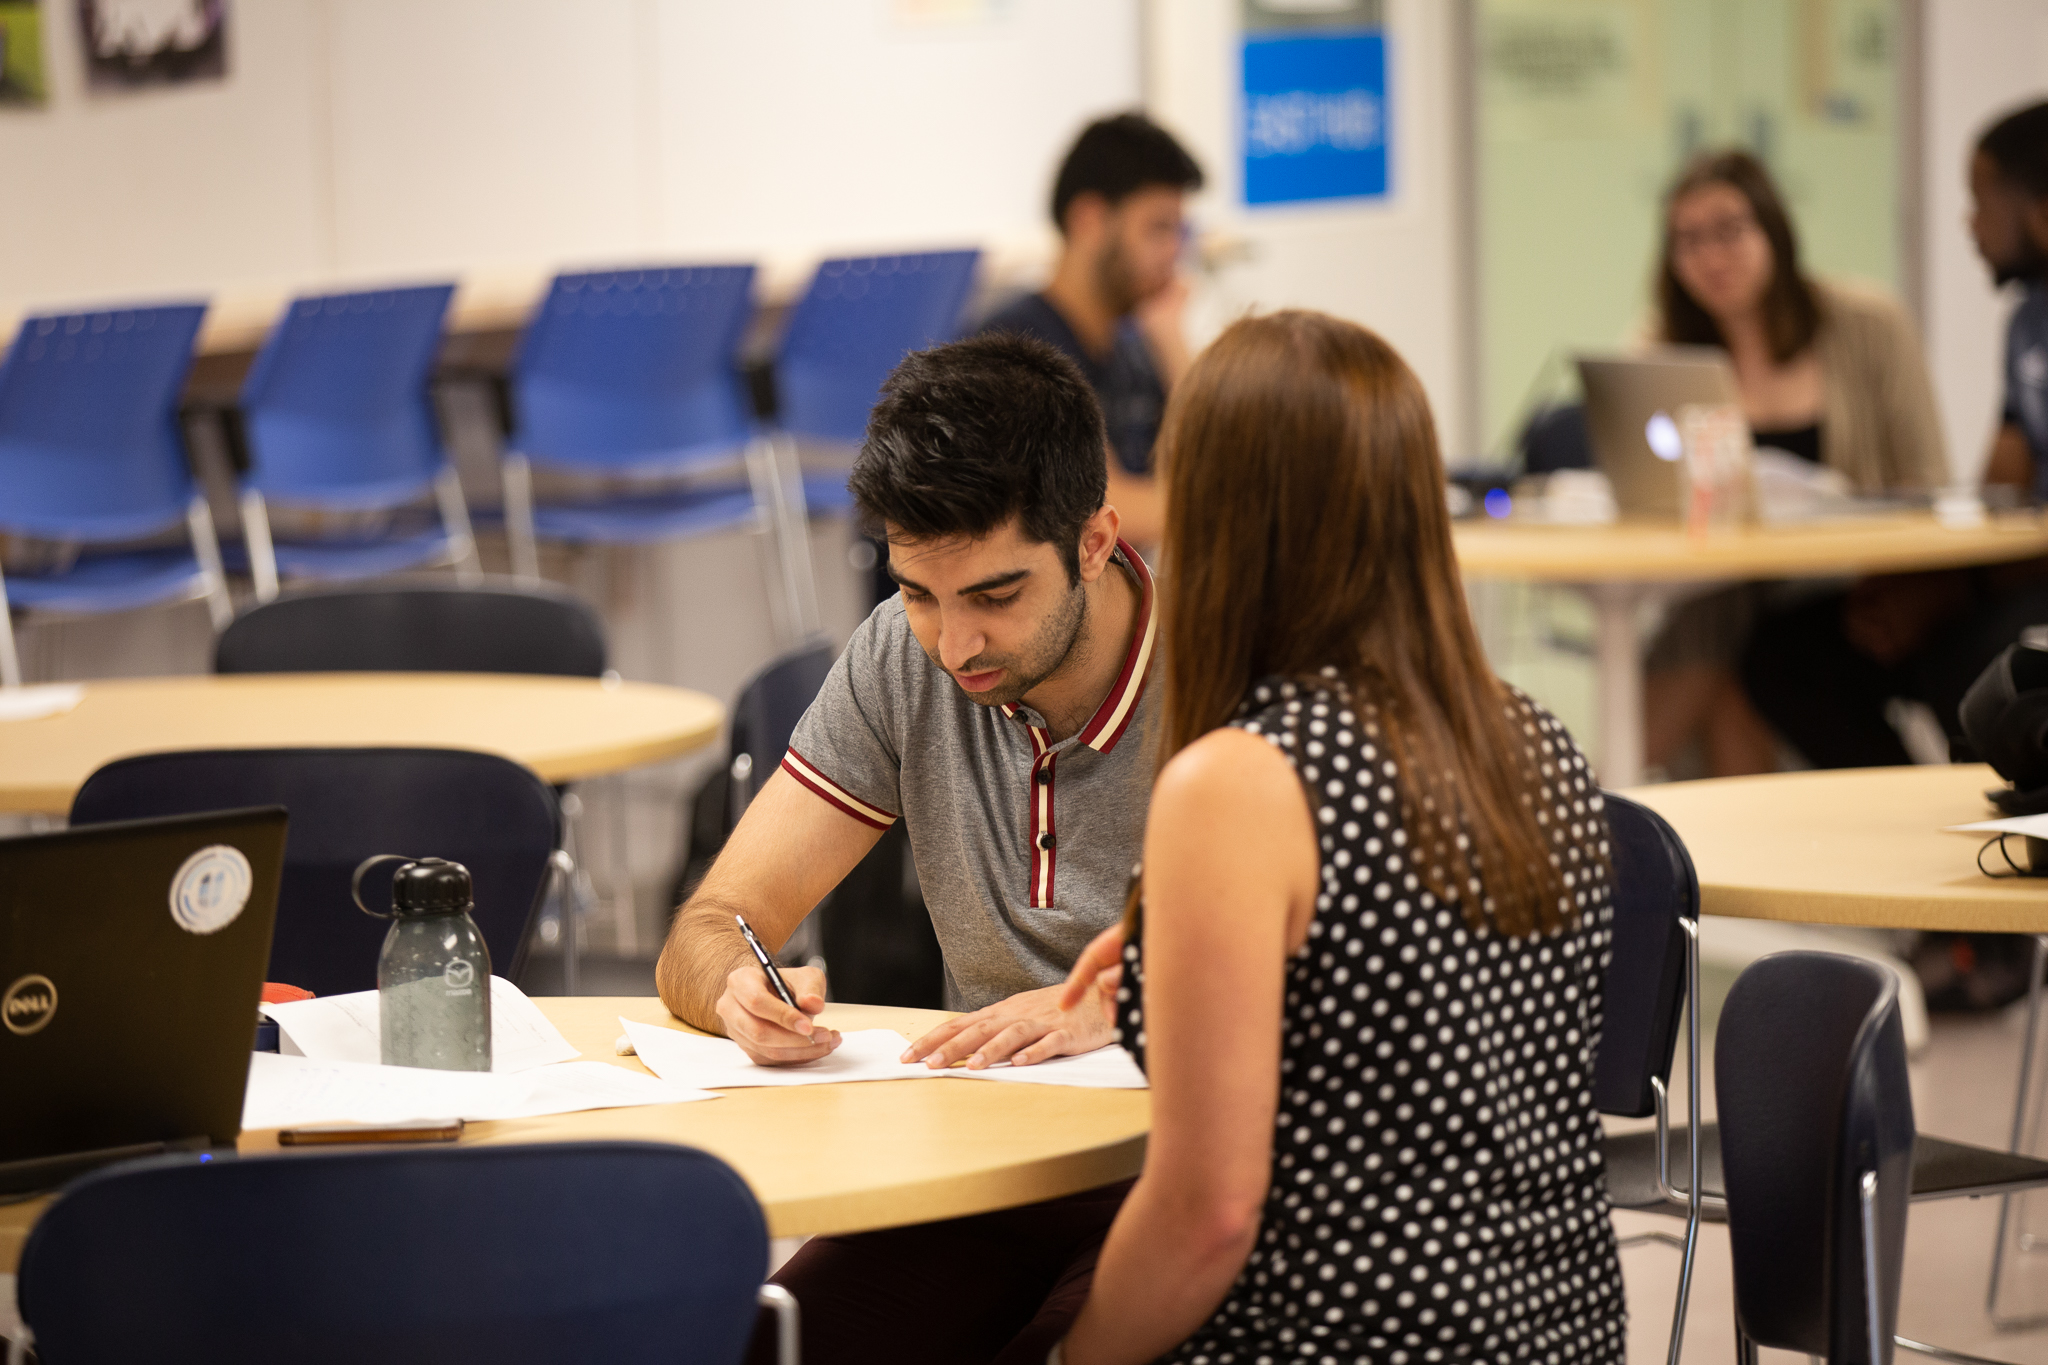 Student receiving one-on-one academic support